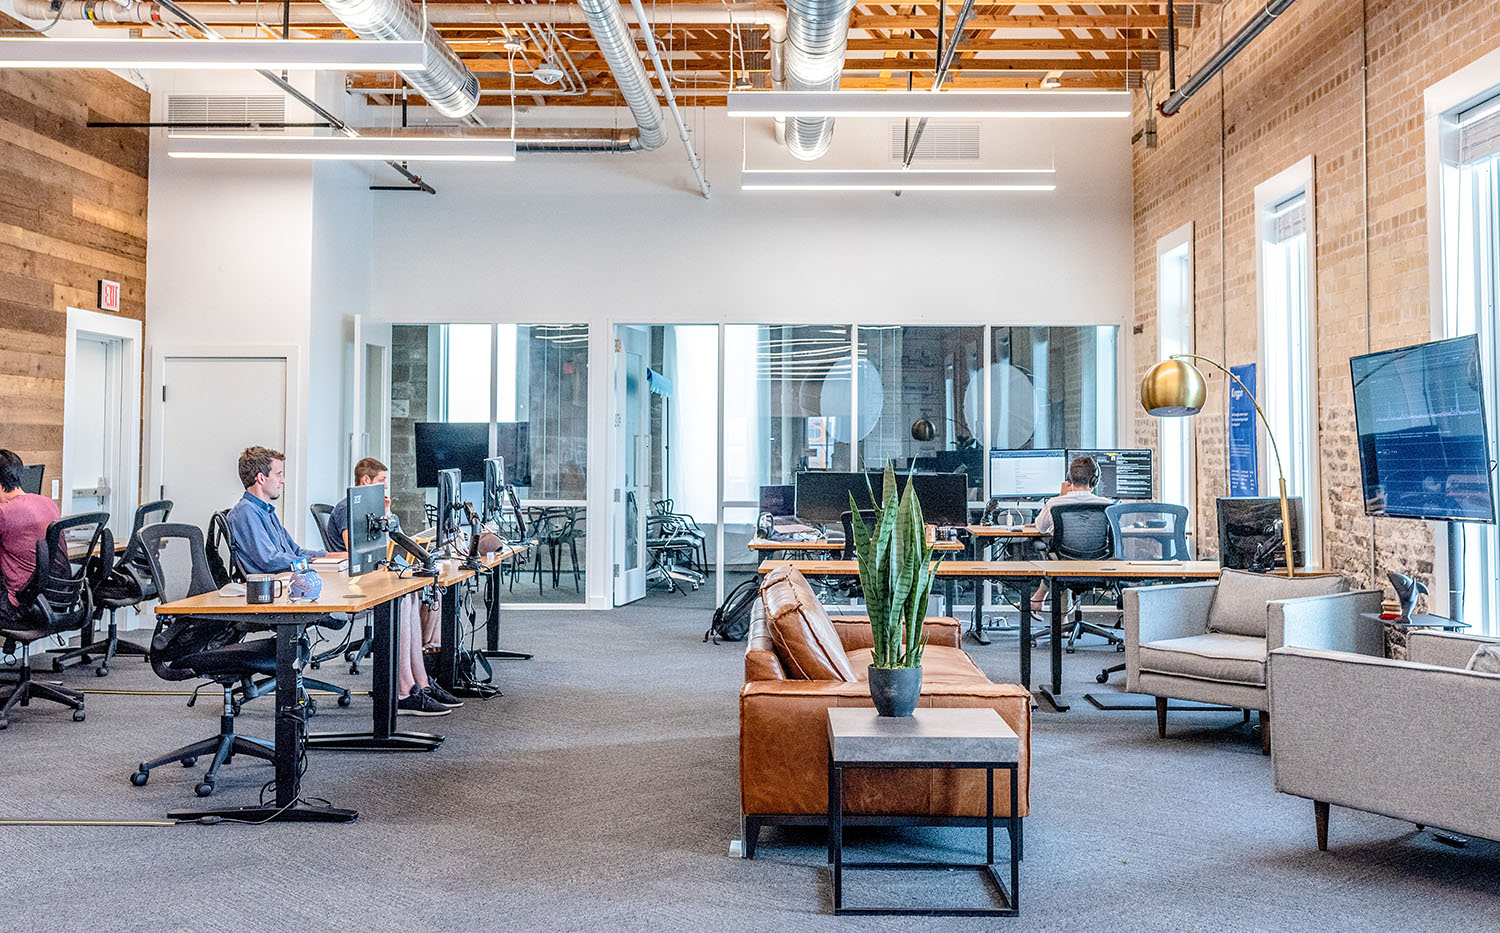 SUSTAINABILITY, HEALTHY WORKSPACES